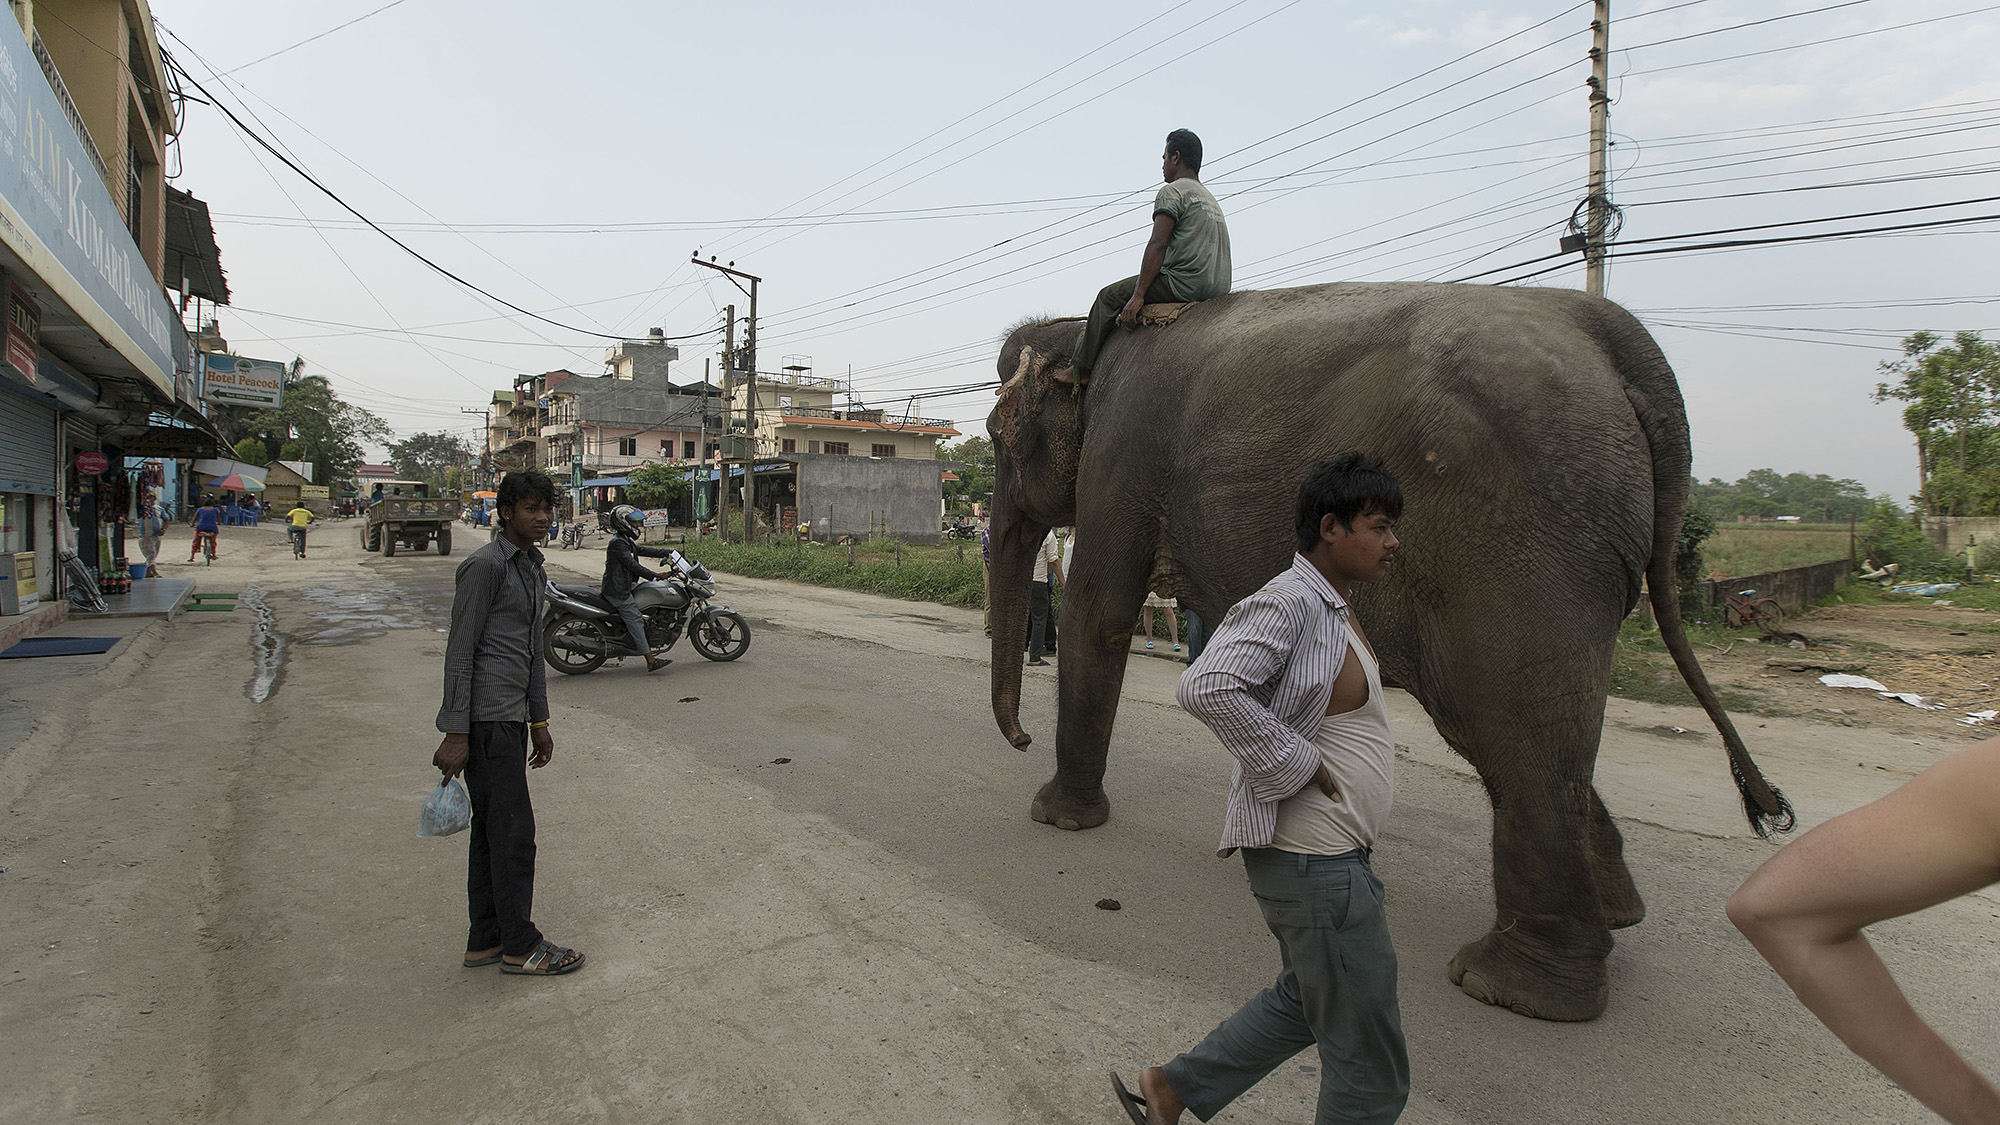 Safaris on elephant back are very common in Chitwan National Park.  The tourism industry due to the park has boomed in recent years, providing more money for anti-poaching but encroaching severely on its periphery with human settlements.